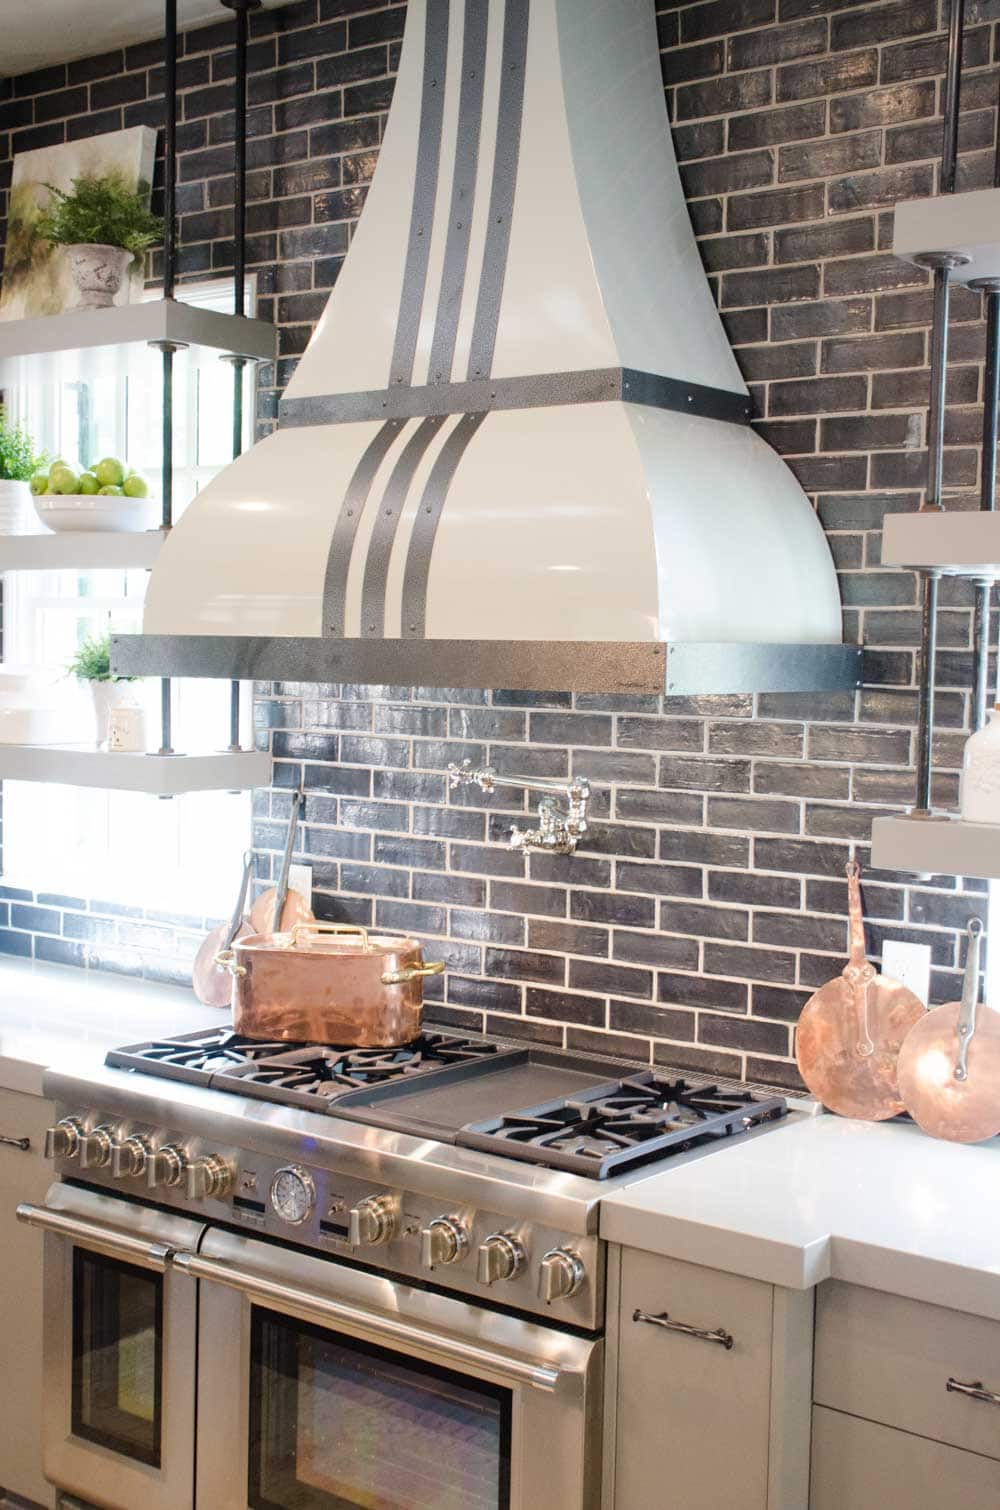 Kitchen design with gray subway tiles and striped range hood